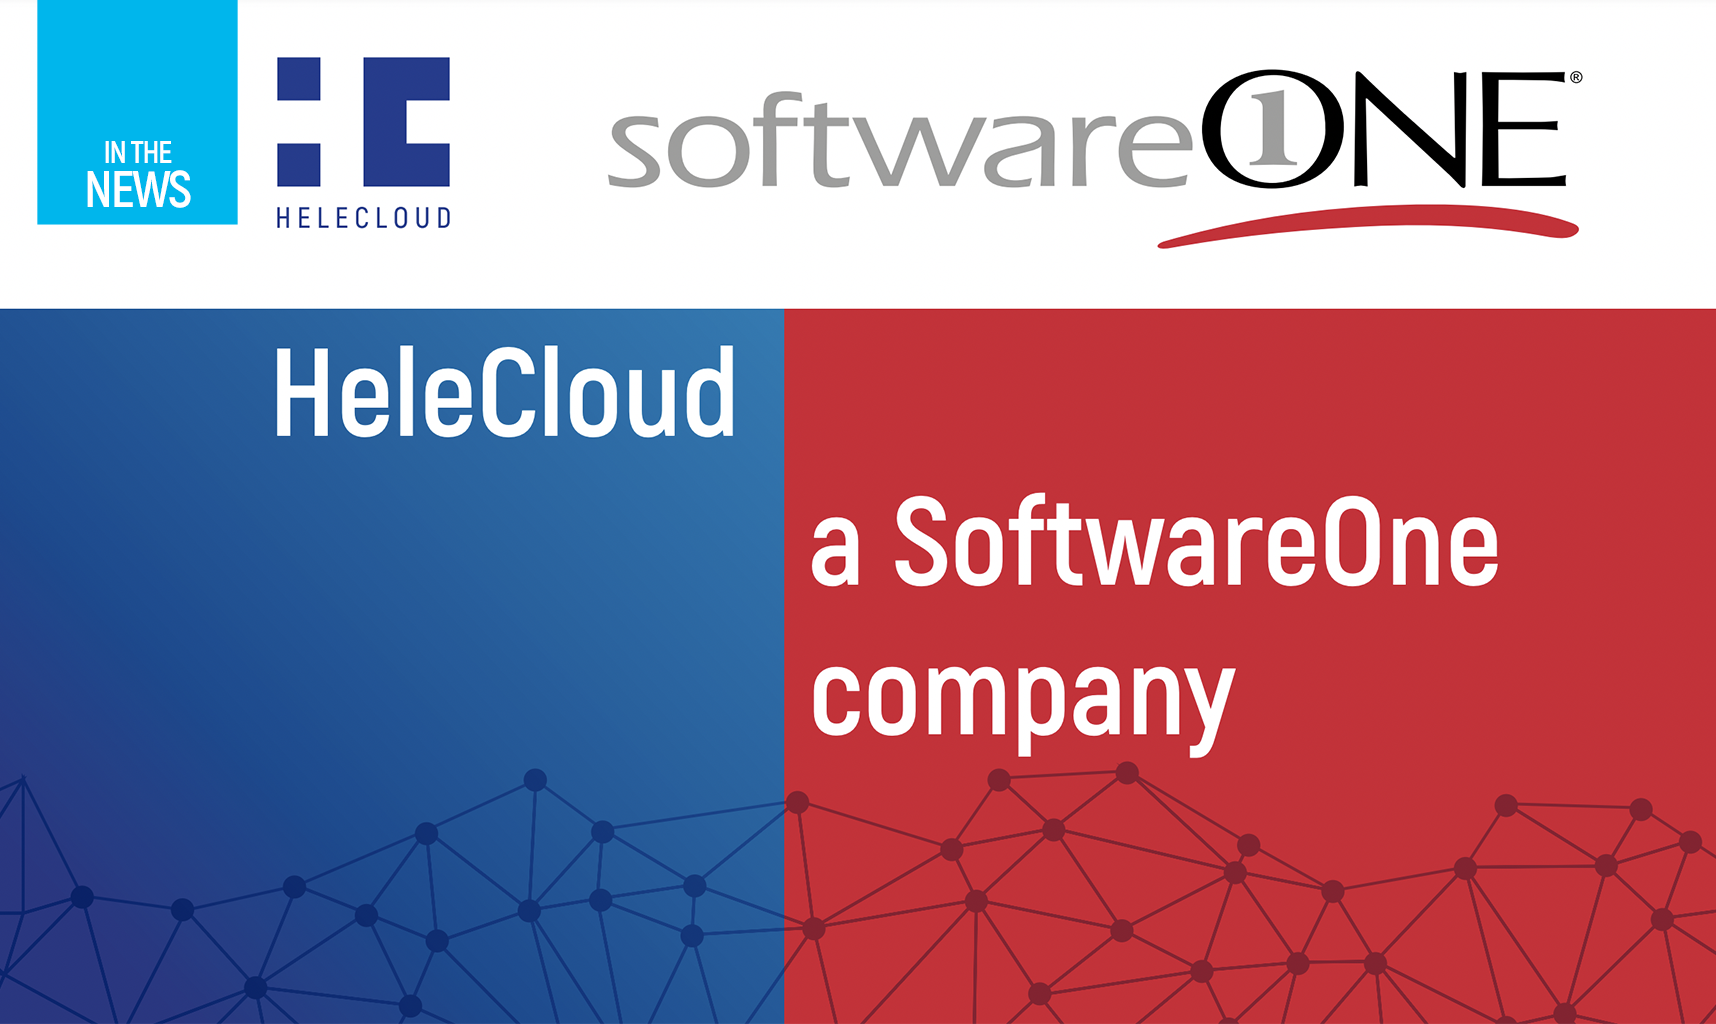 SoftwareONE acquires HeleCloud, a leading independent AWS Premier Consulting Partner in EMEA